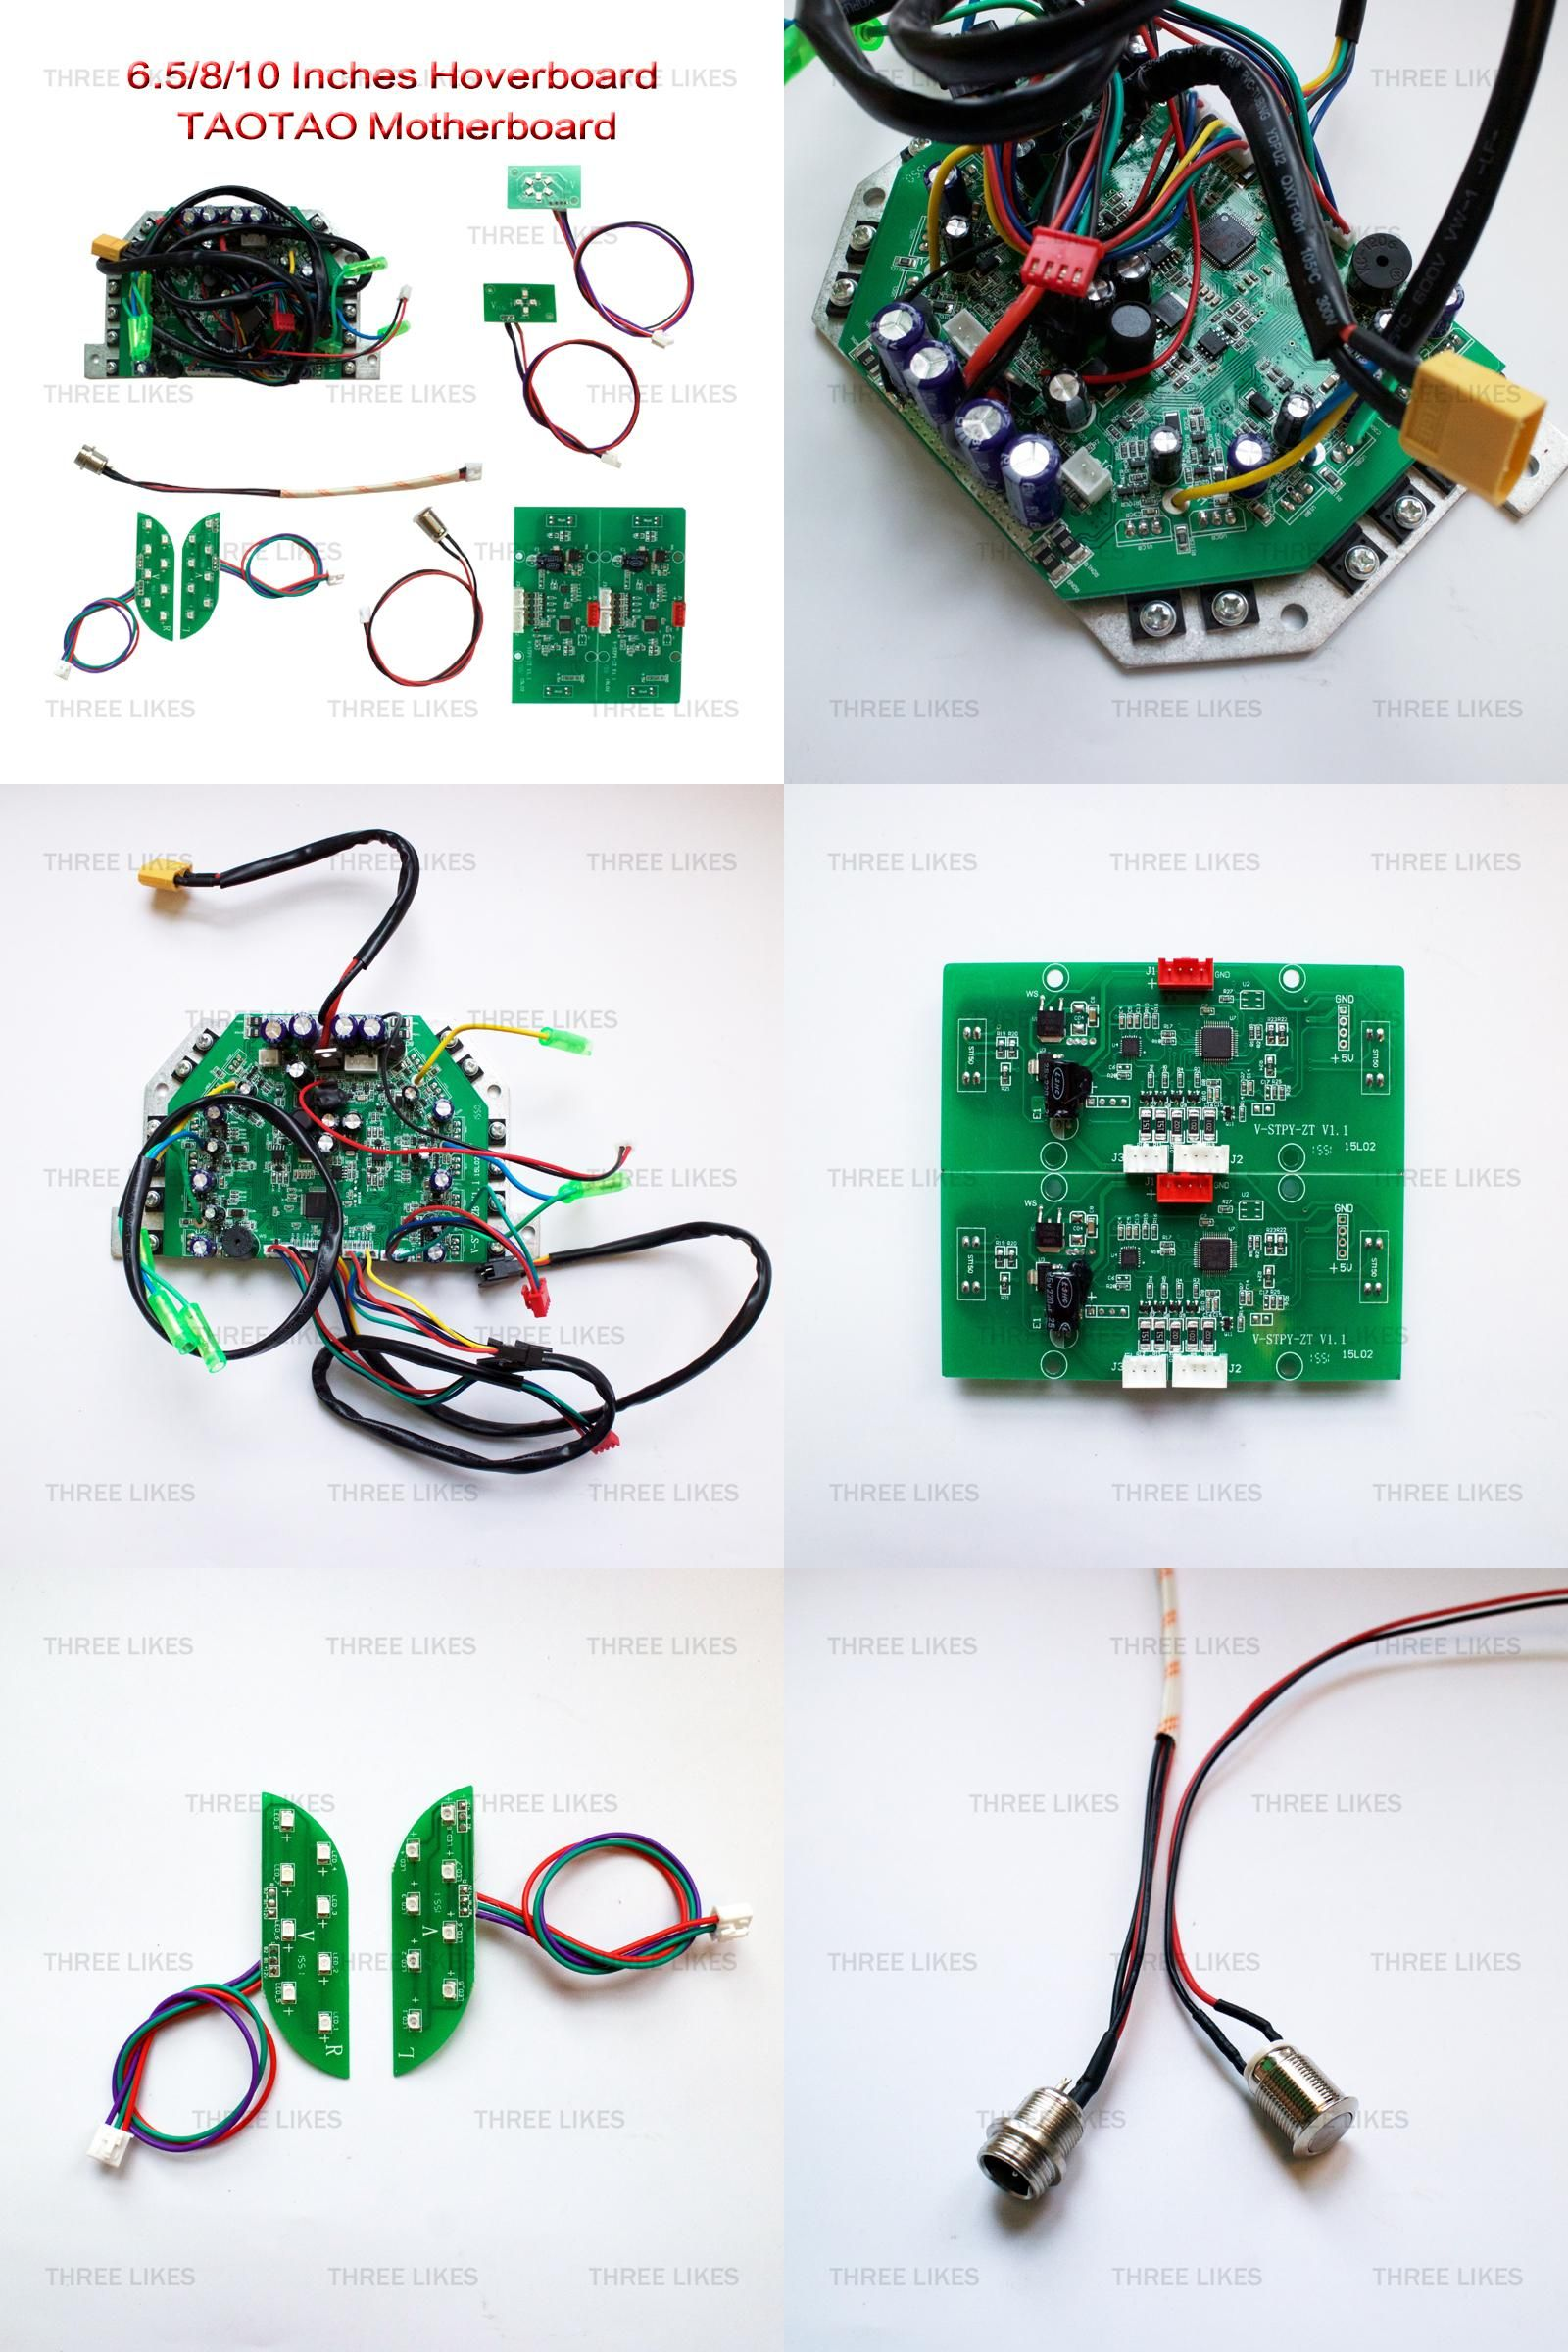 Visit to Buy] Hoverboard Motherboard Mainboard Control Circuit ...